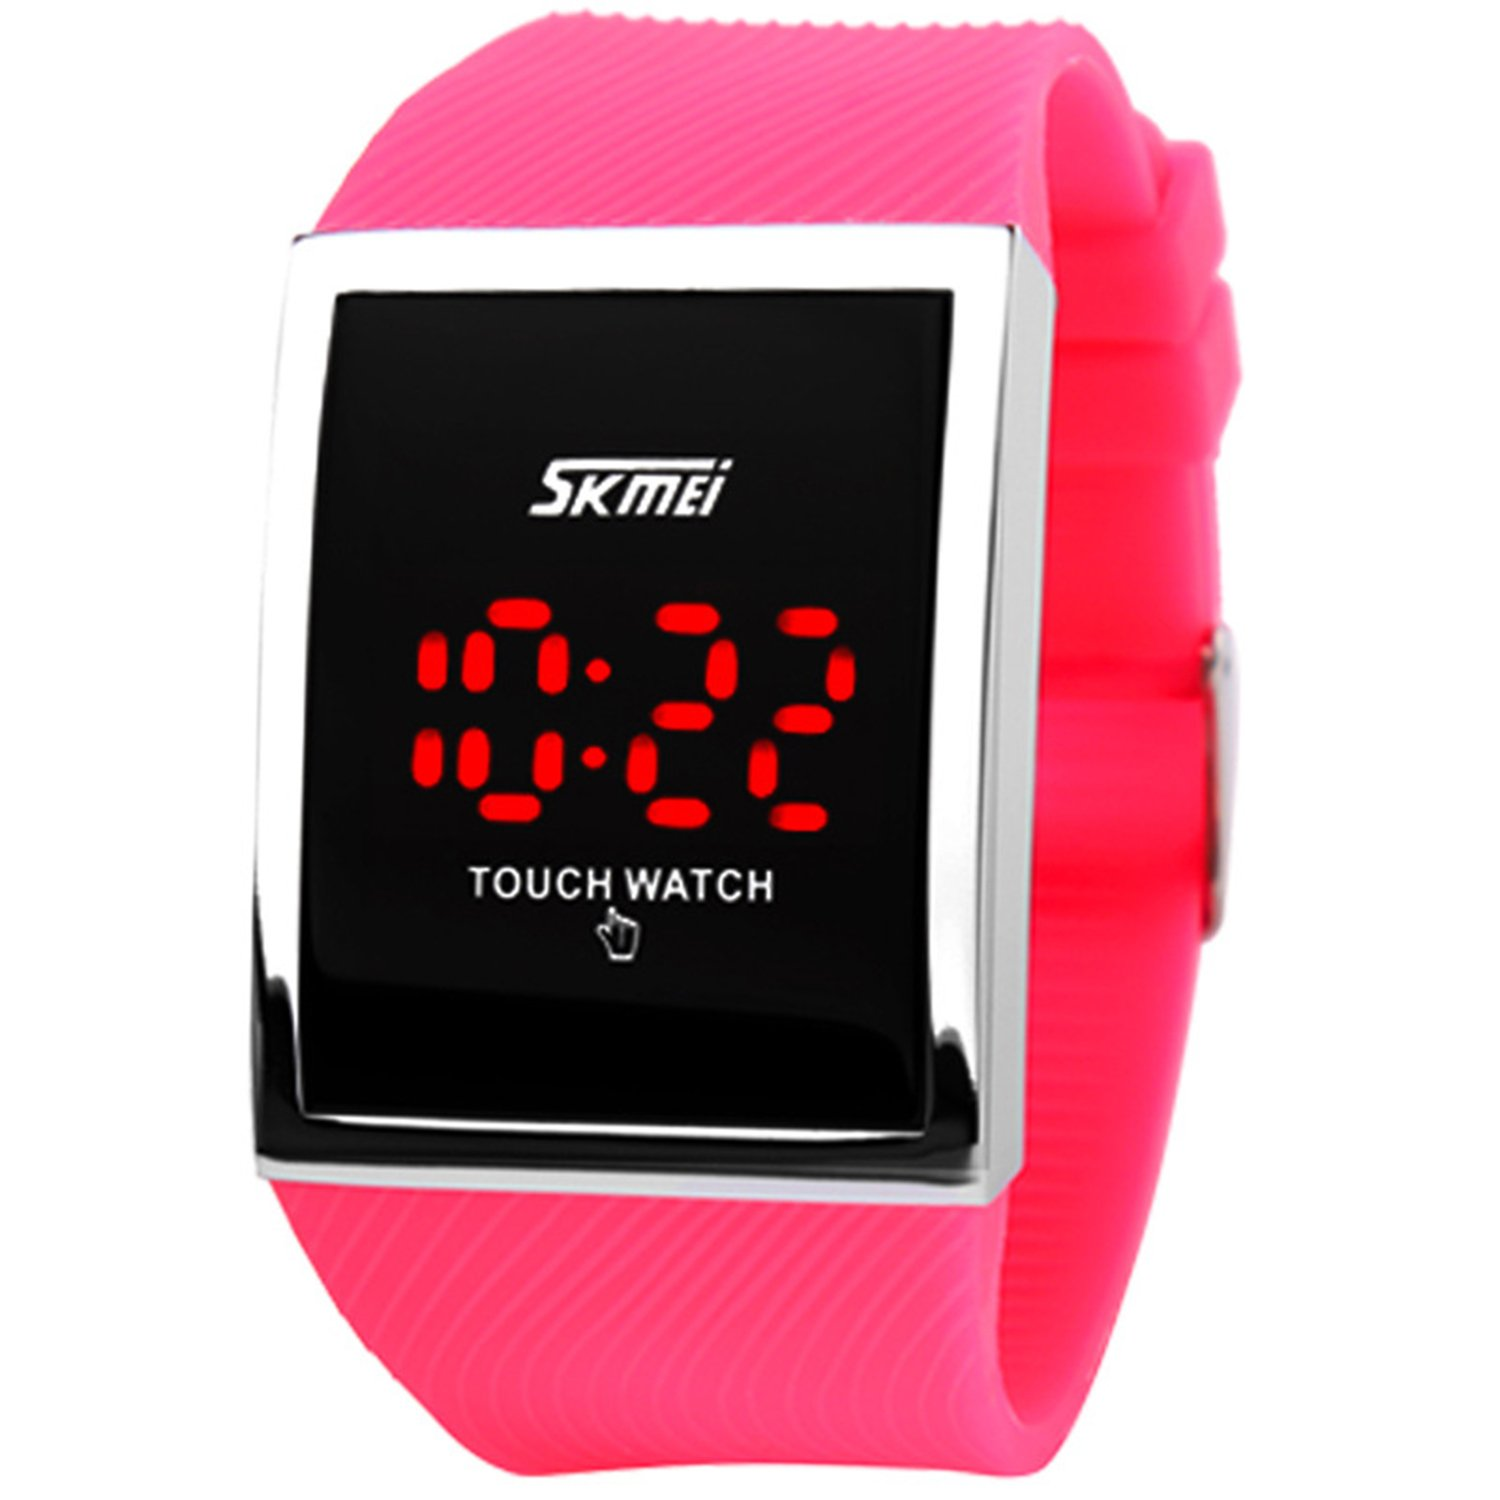 Touch Screen Outdoor Sports Black Watch with LED, Digital for Boys Girls, Above 10 Years Old Kids by FIZILI (Image #8)